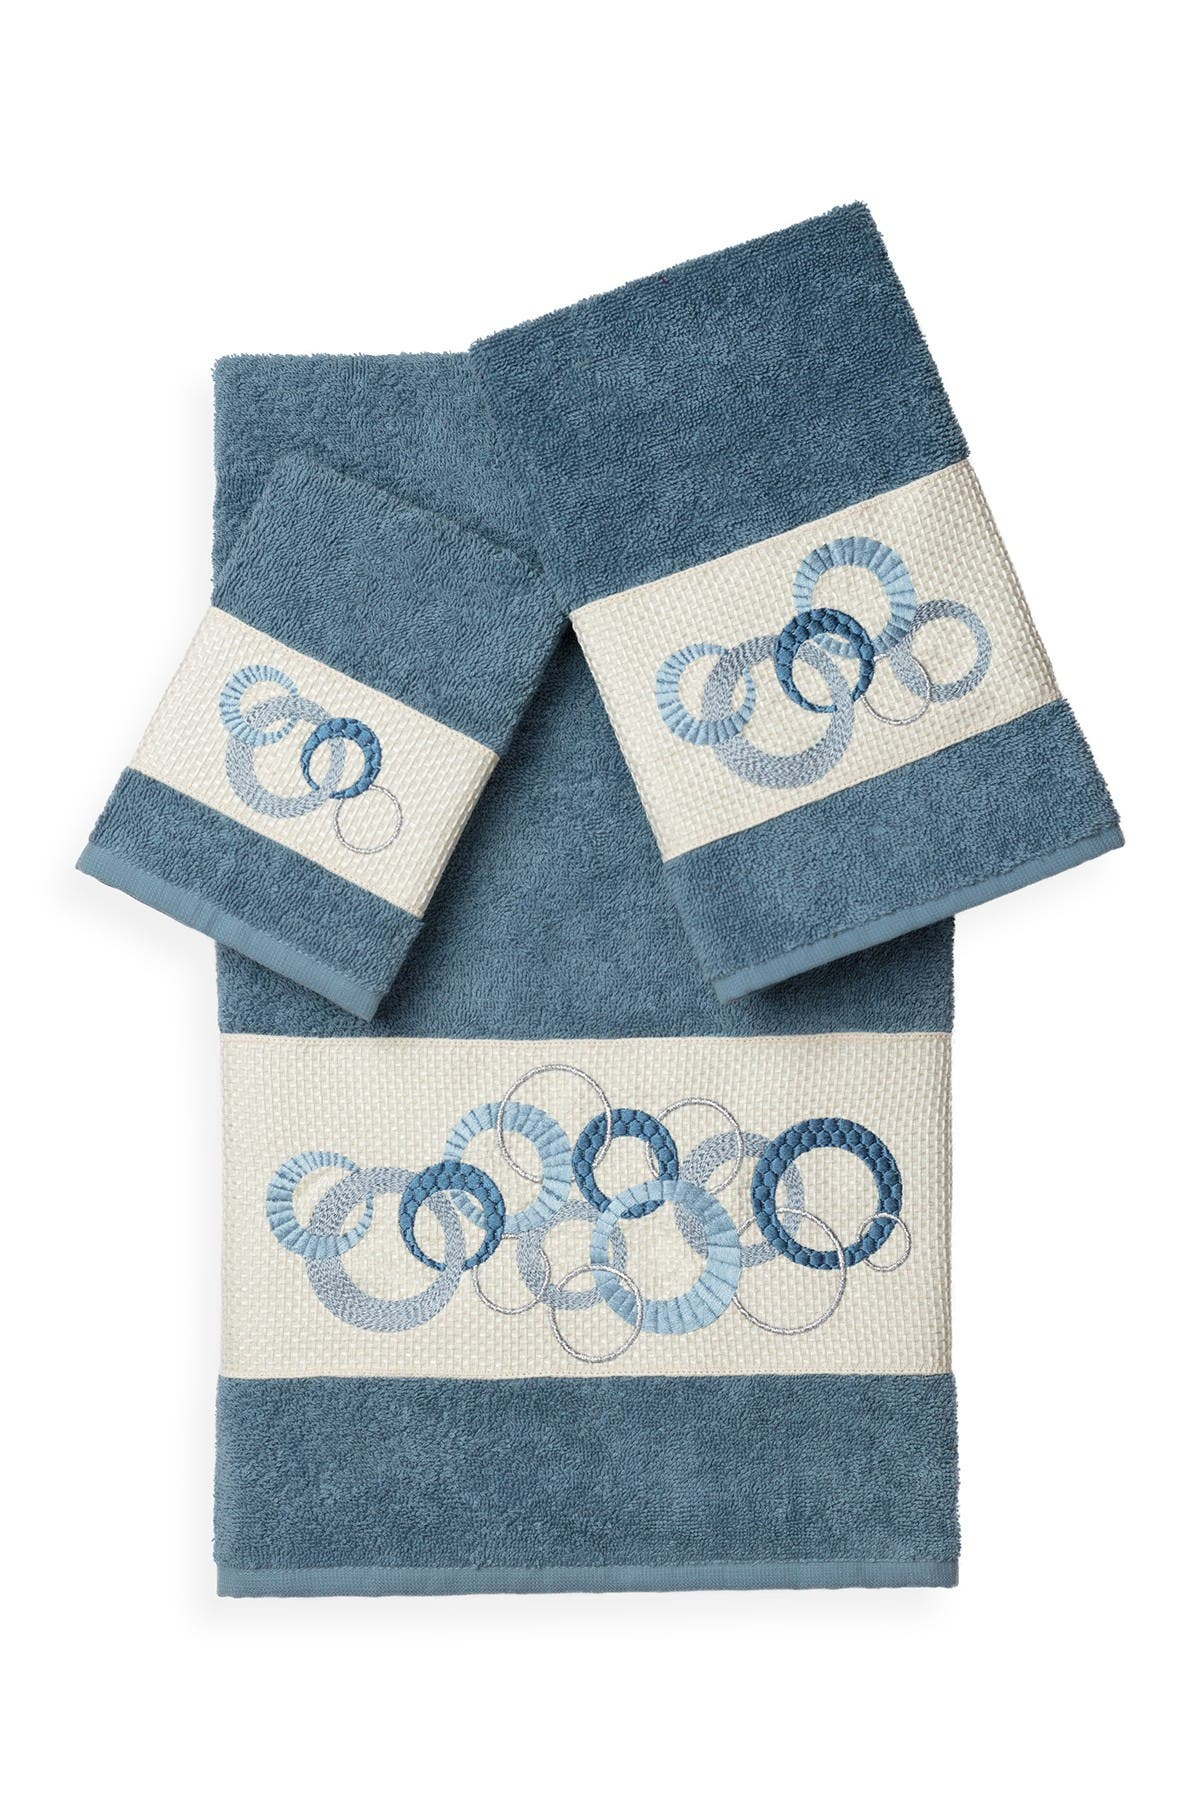 Image of LINUM TOWELS Annabelle 3-Piece Embellished Towel Set - Teal